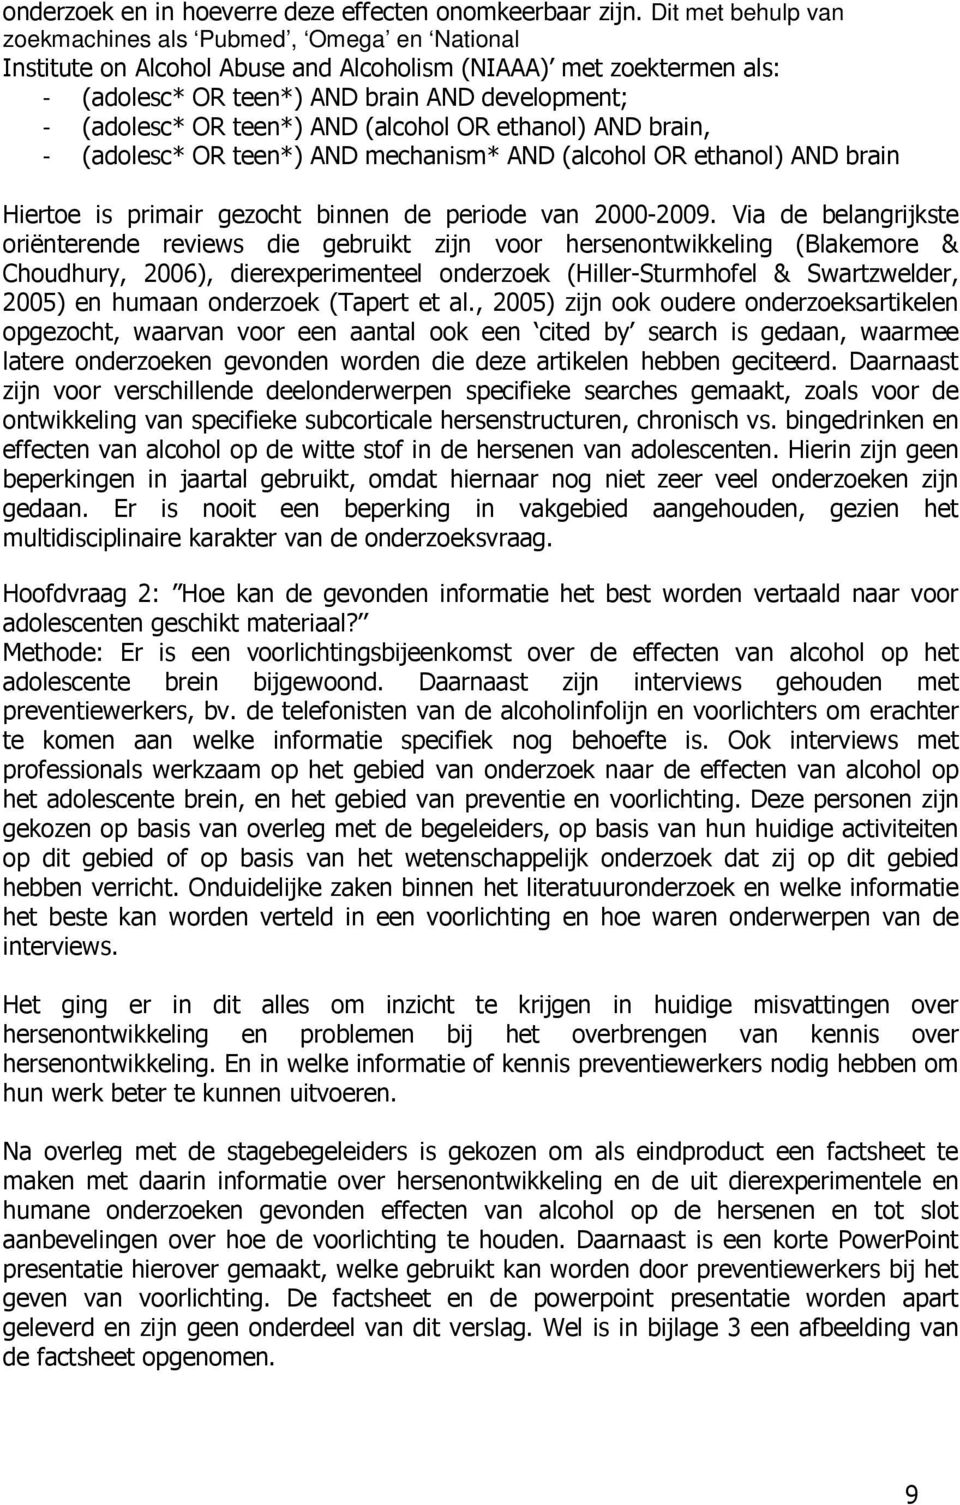 teen*) AND (alcohol OR ethanol) AND brain, - (adolesc* OR teen*) AND mechanism* AND (alcohol OR ethanol) AND brain Hiertoe is primair gezocht binnen de periode van 2000-2009.